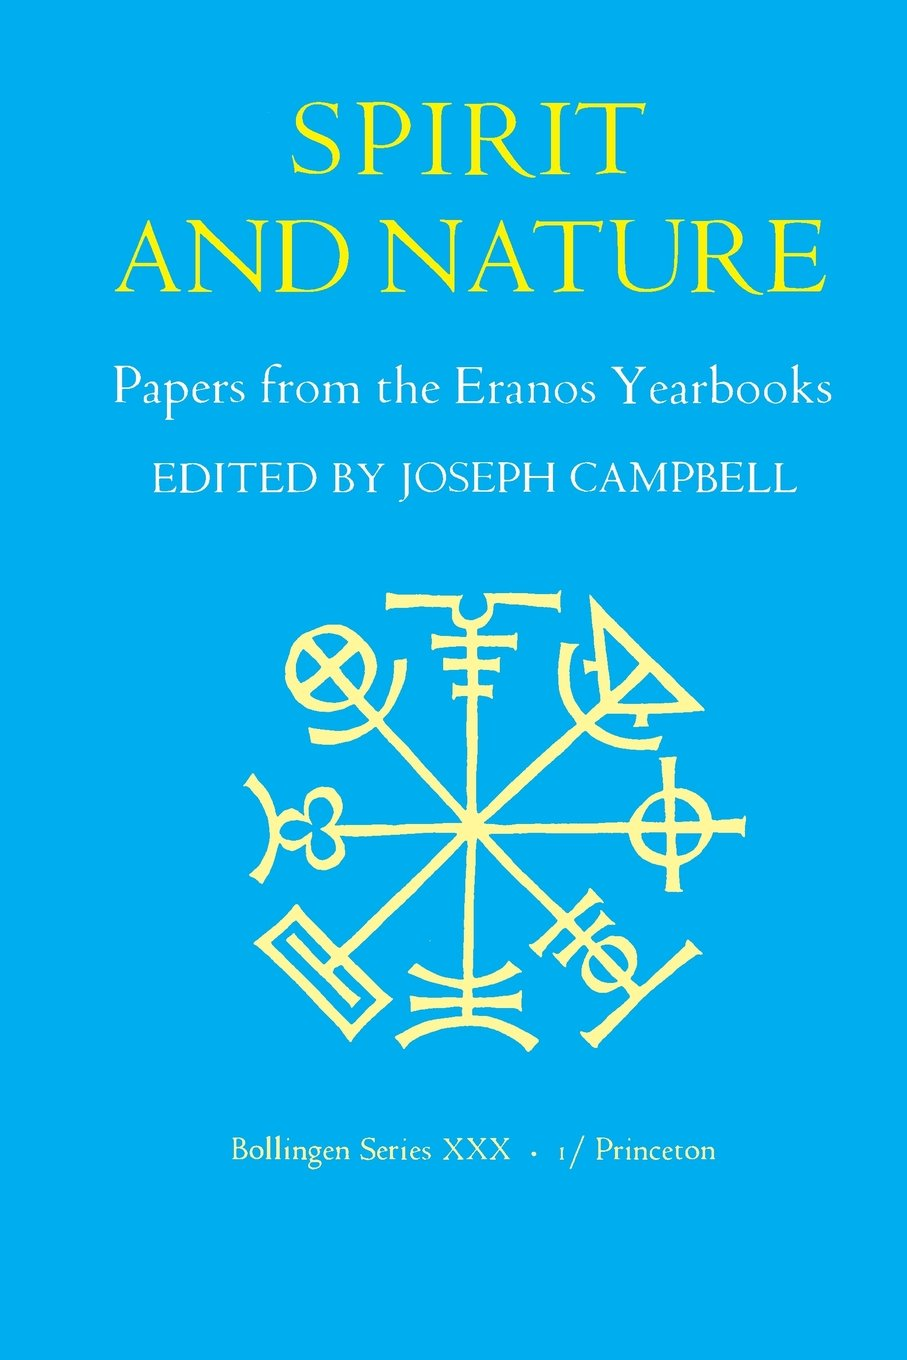 Papers From The Eranos Yearbooks Eranos 1  Spirit And Nature  PRINCETON BOLLINGEN PAPERBACKS Band 1